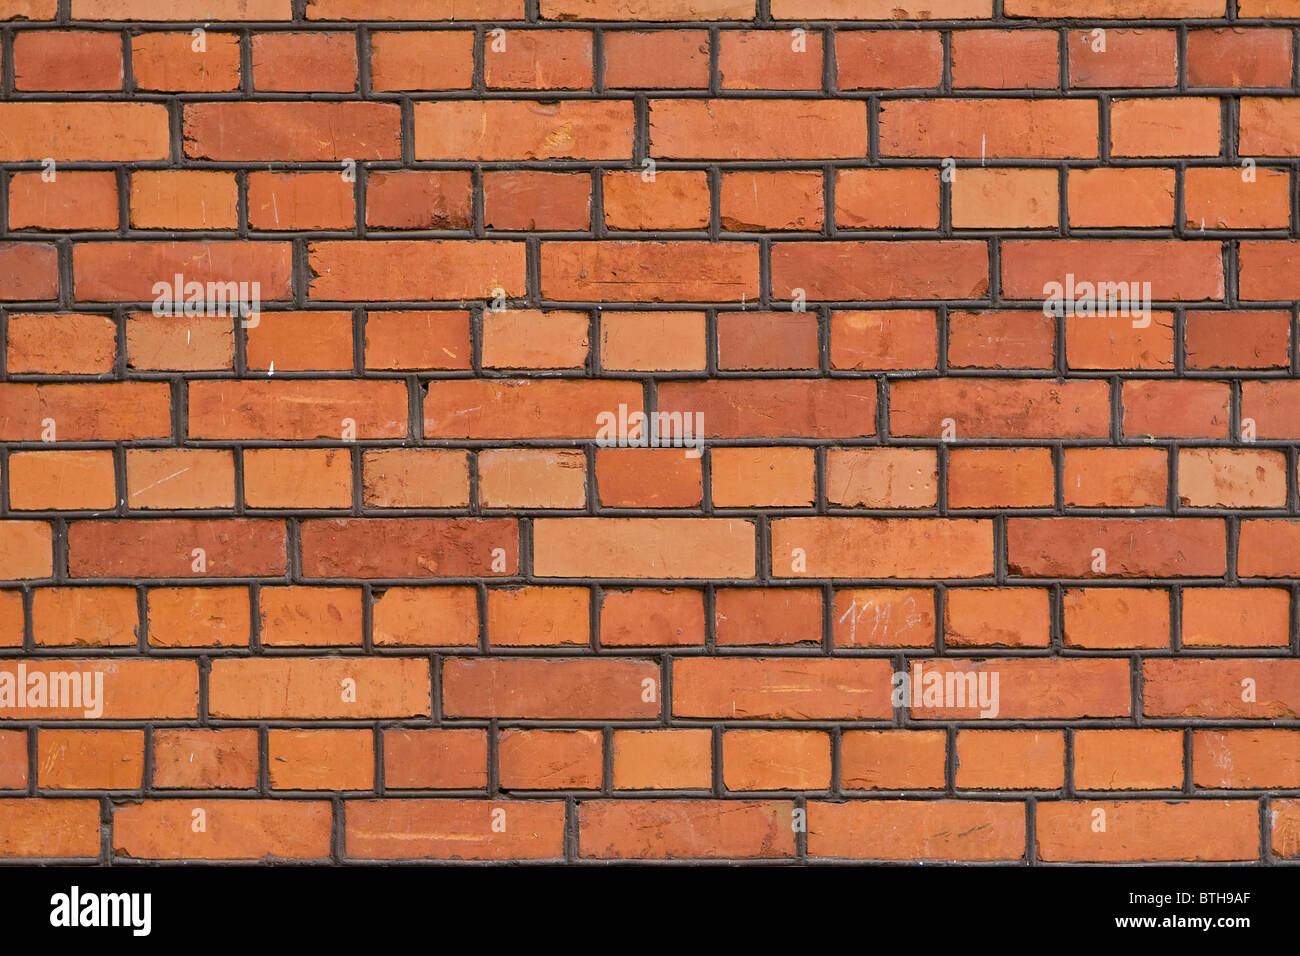 The facade view of the old brick wall for design background. - Stock Image